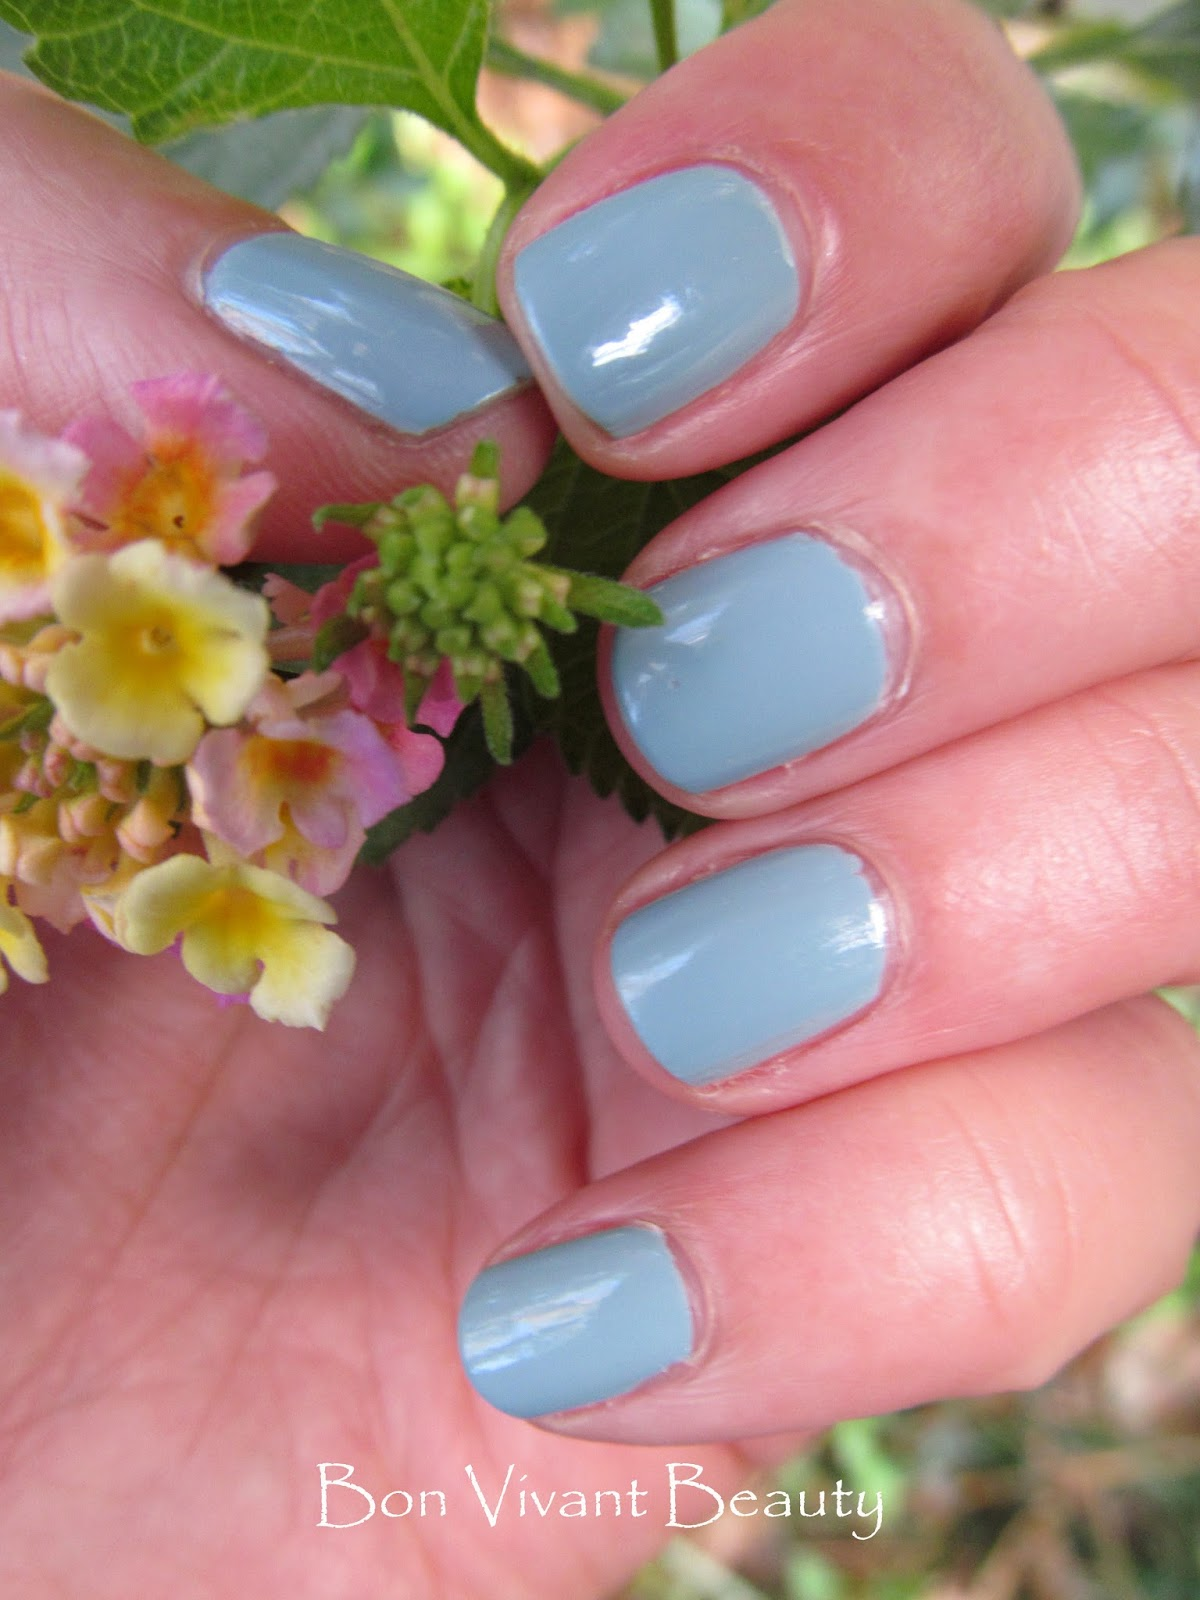 Bon Vivant Beauty: Pantone Serenity Color of the Year and Zoey by  #9F2C34